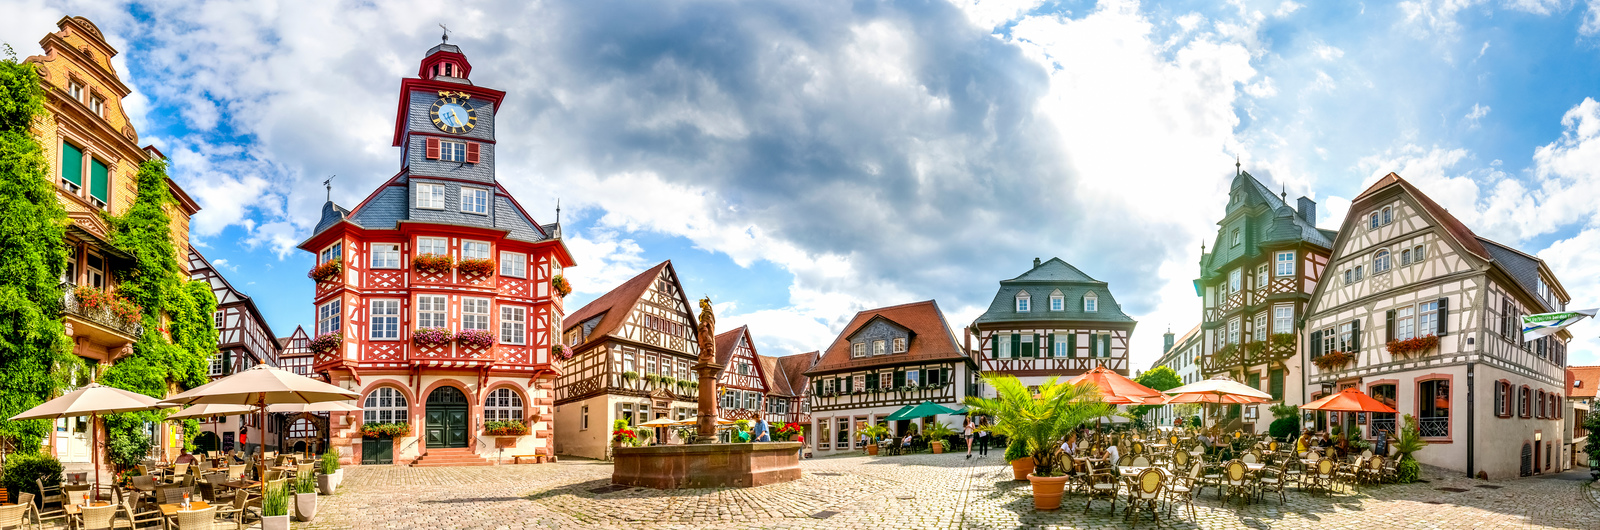 heppenheim city header